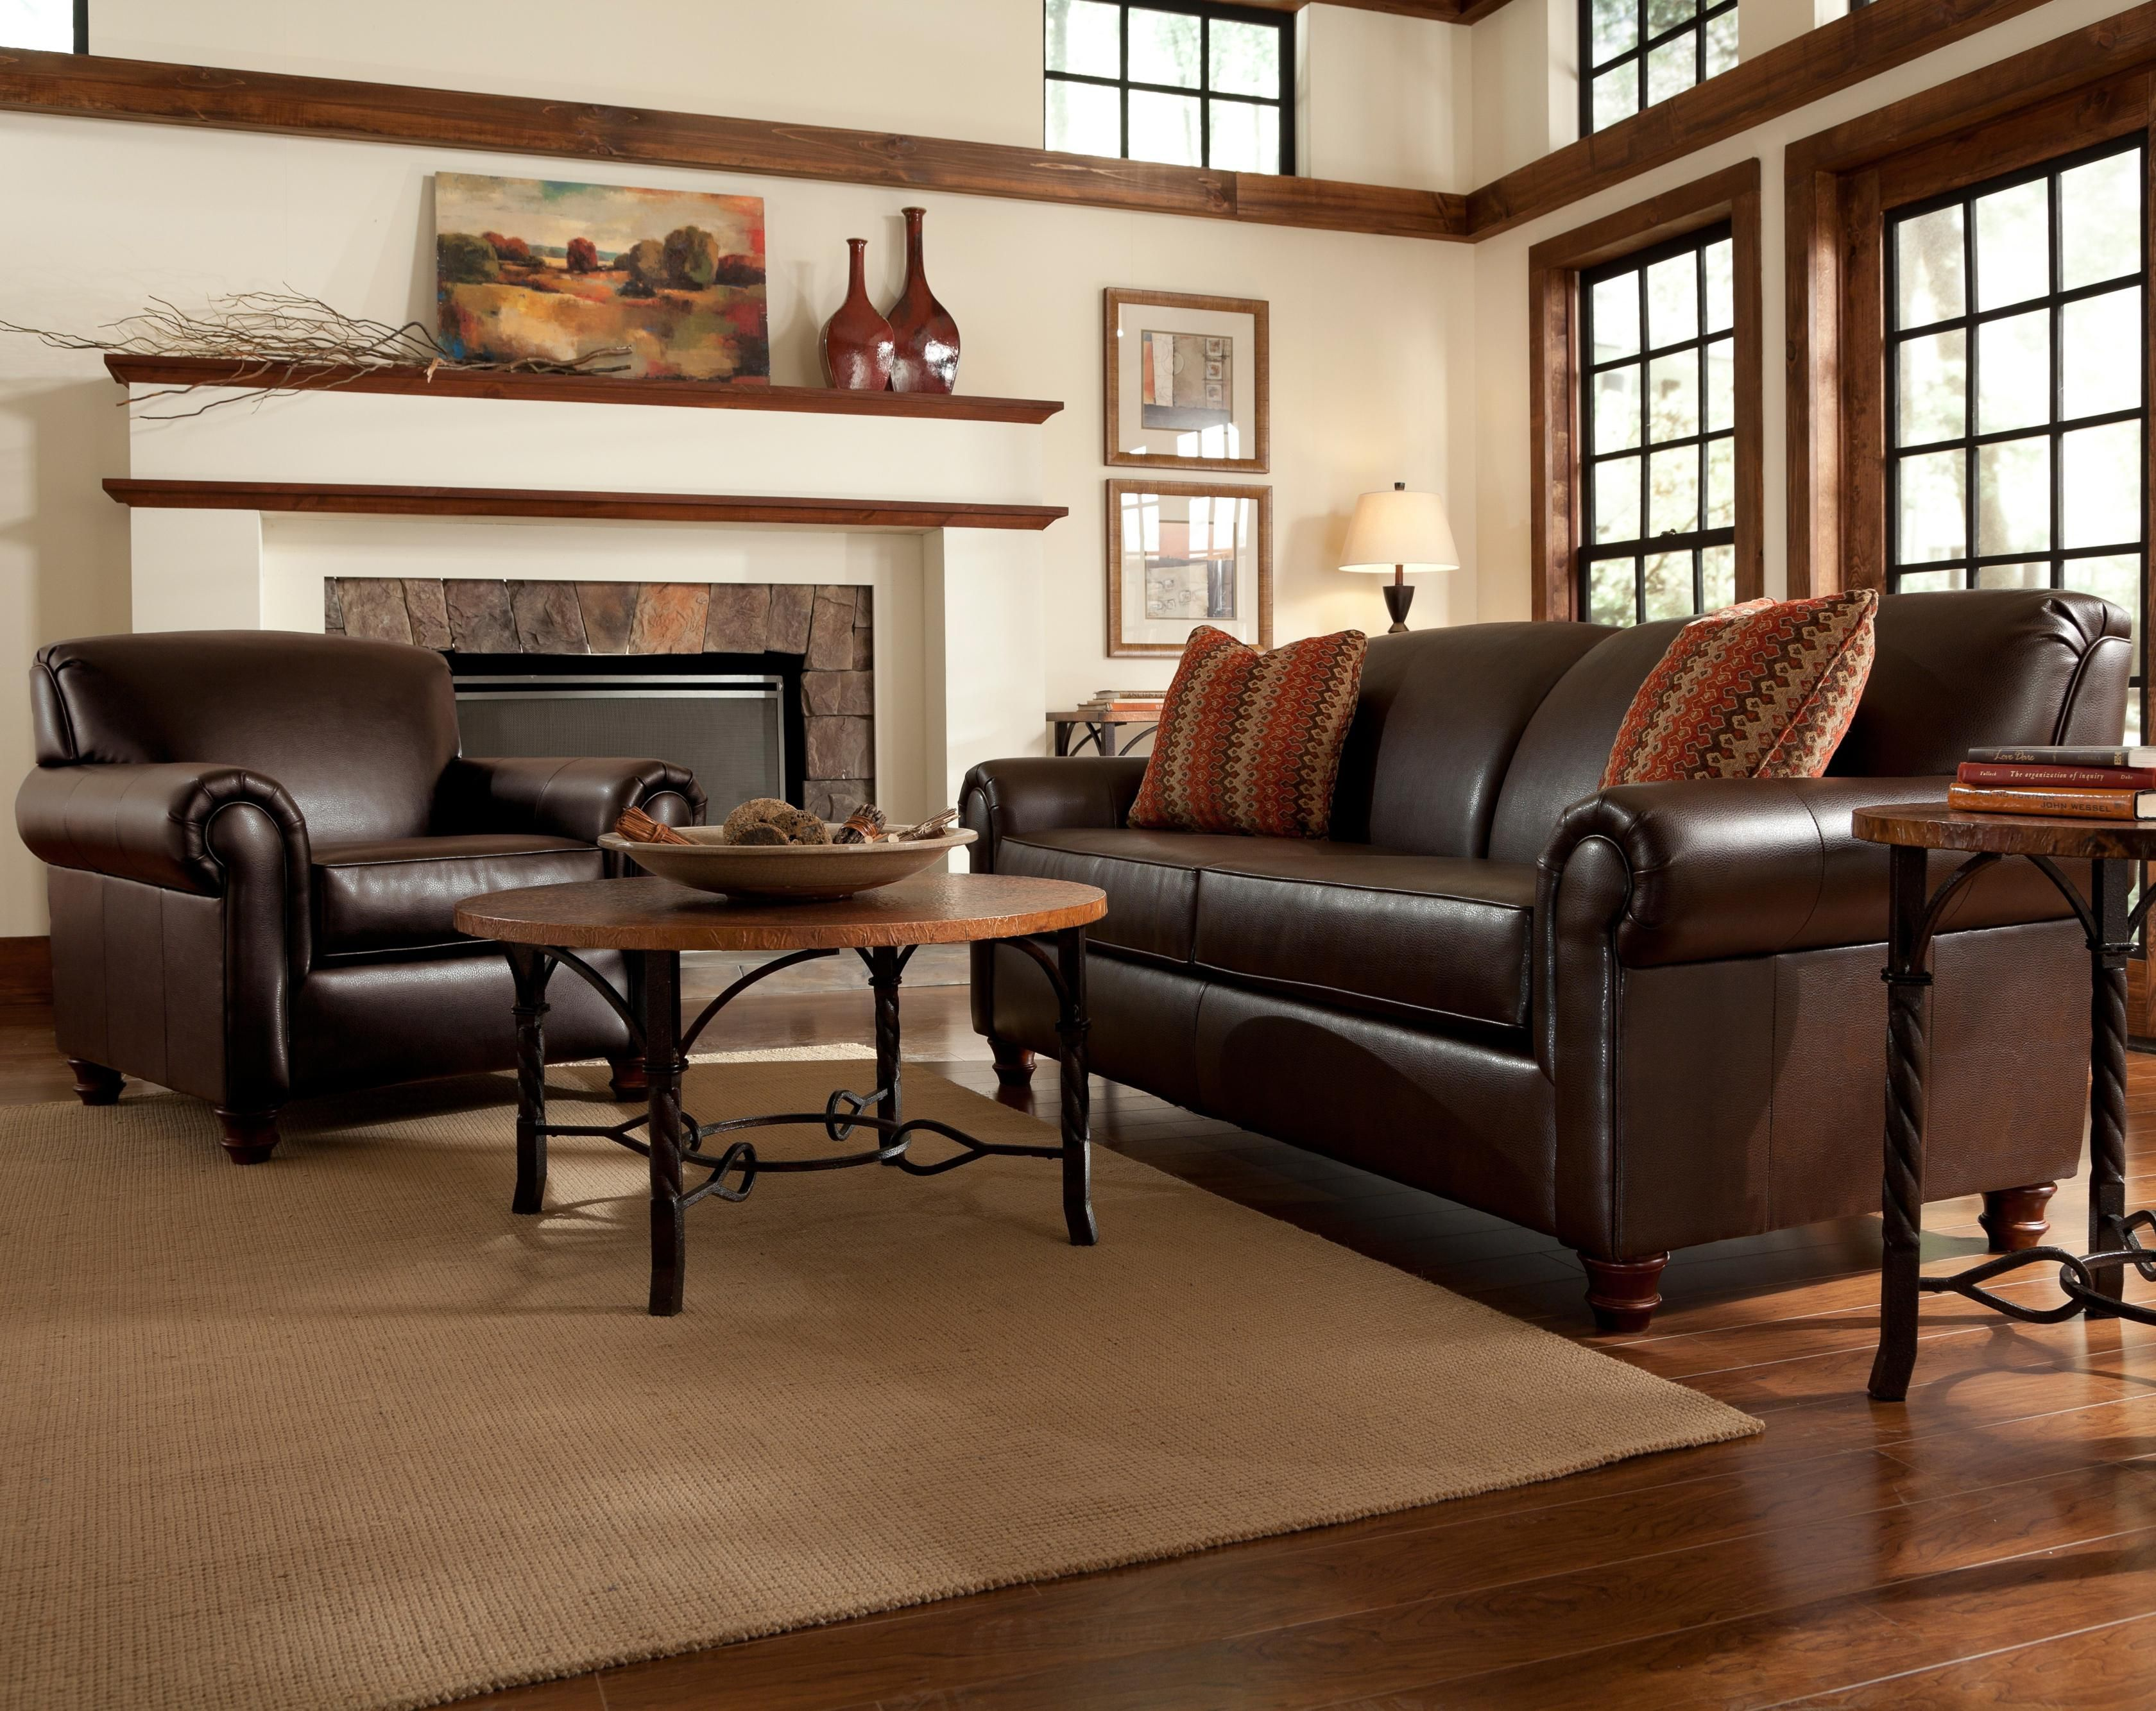 Great Artisano Upholstered Accent Lounge Chair By Broyhill Furniture   Becker  Furniture World   Upholstered Chair Twin